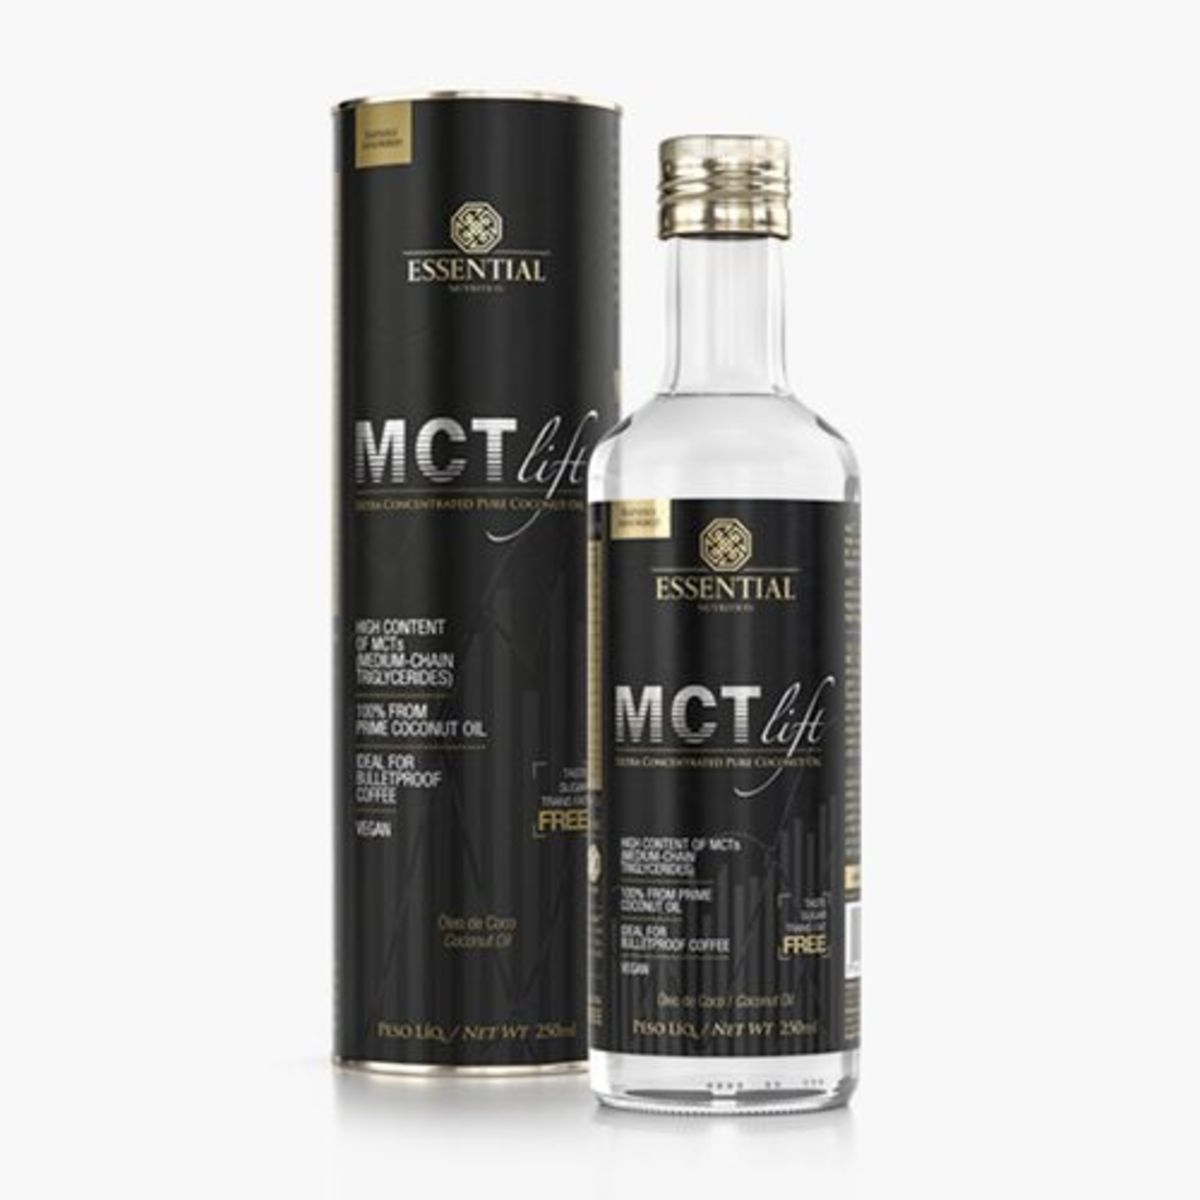 MCT LIFT - ESSENTIAL